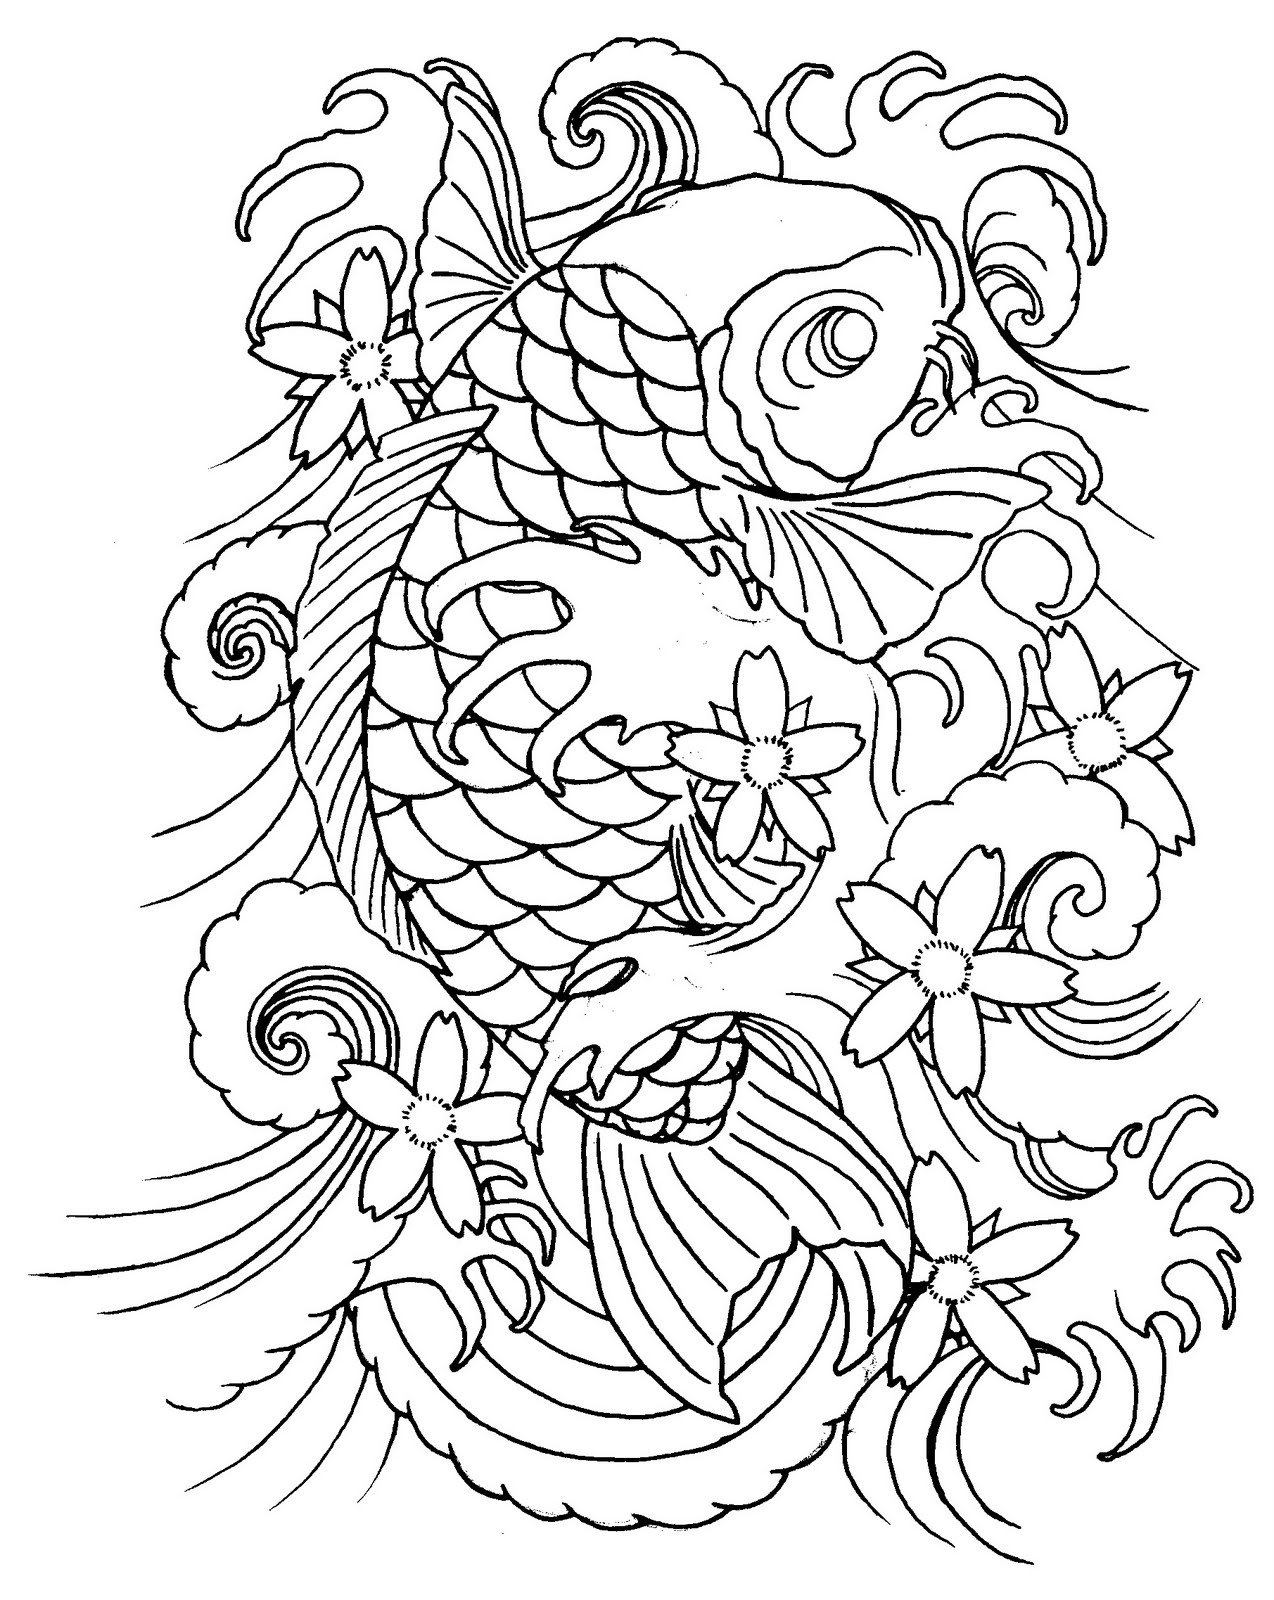 Black Line Drawing Tattoo : Koi tattoos designs ideas and meaning for you